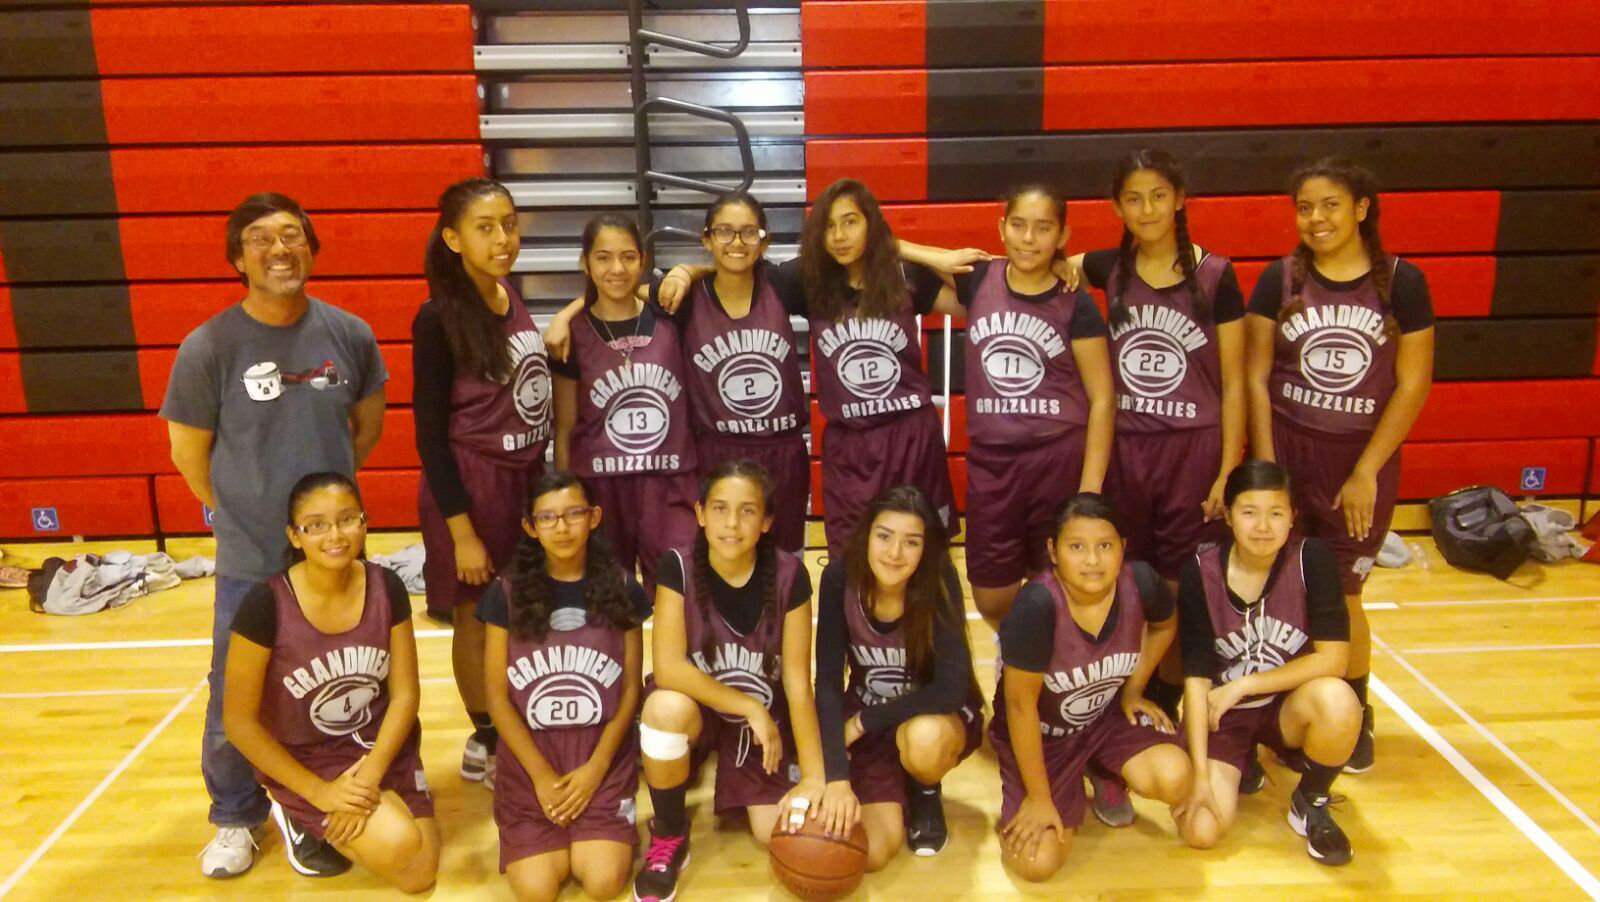 Girl's Basketball Team